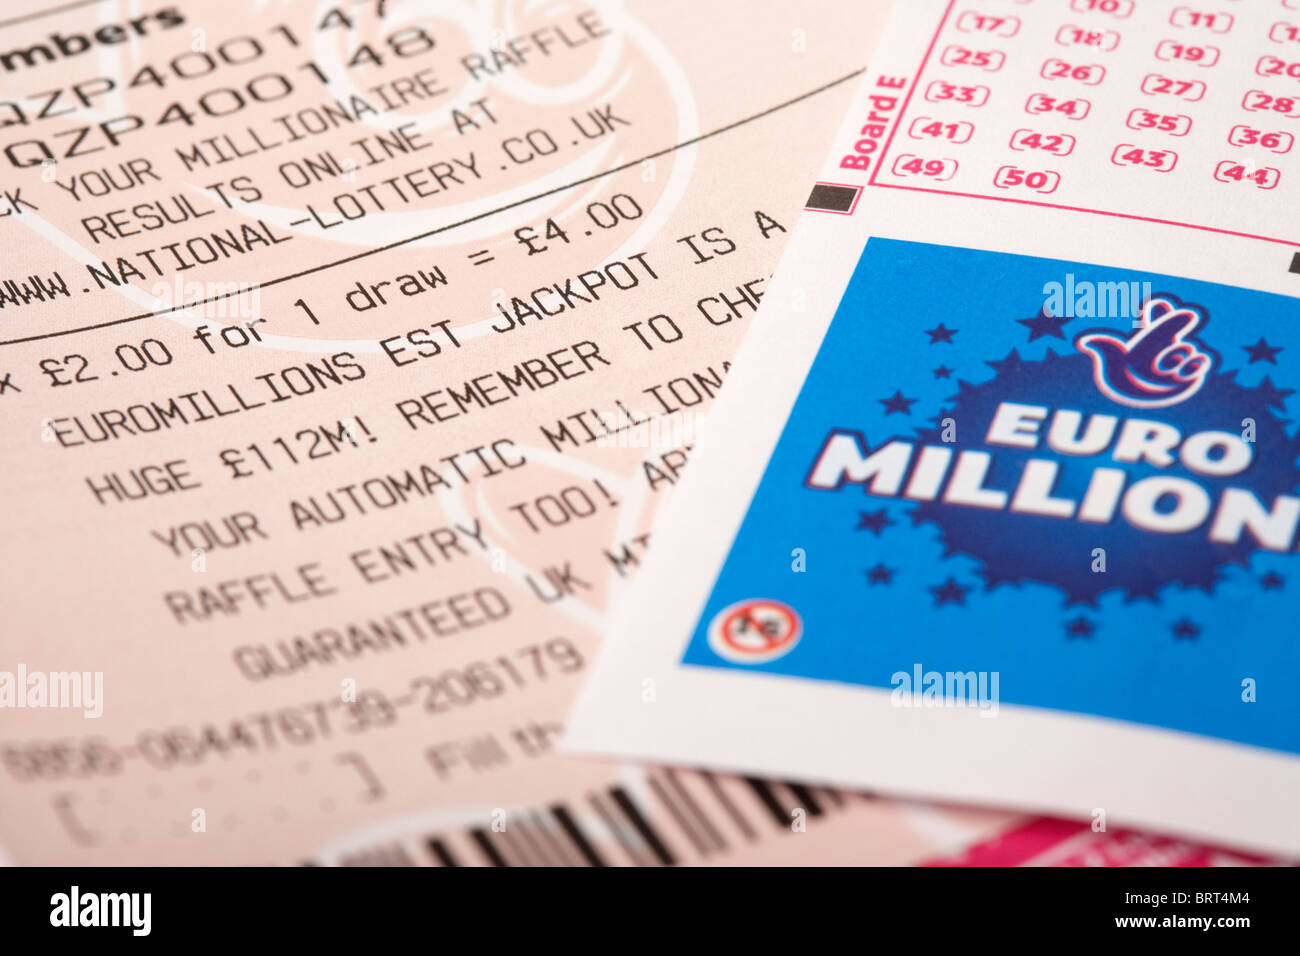 uk british national lottery euromillions ticket with picks Stock Photo